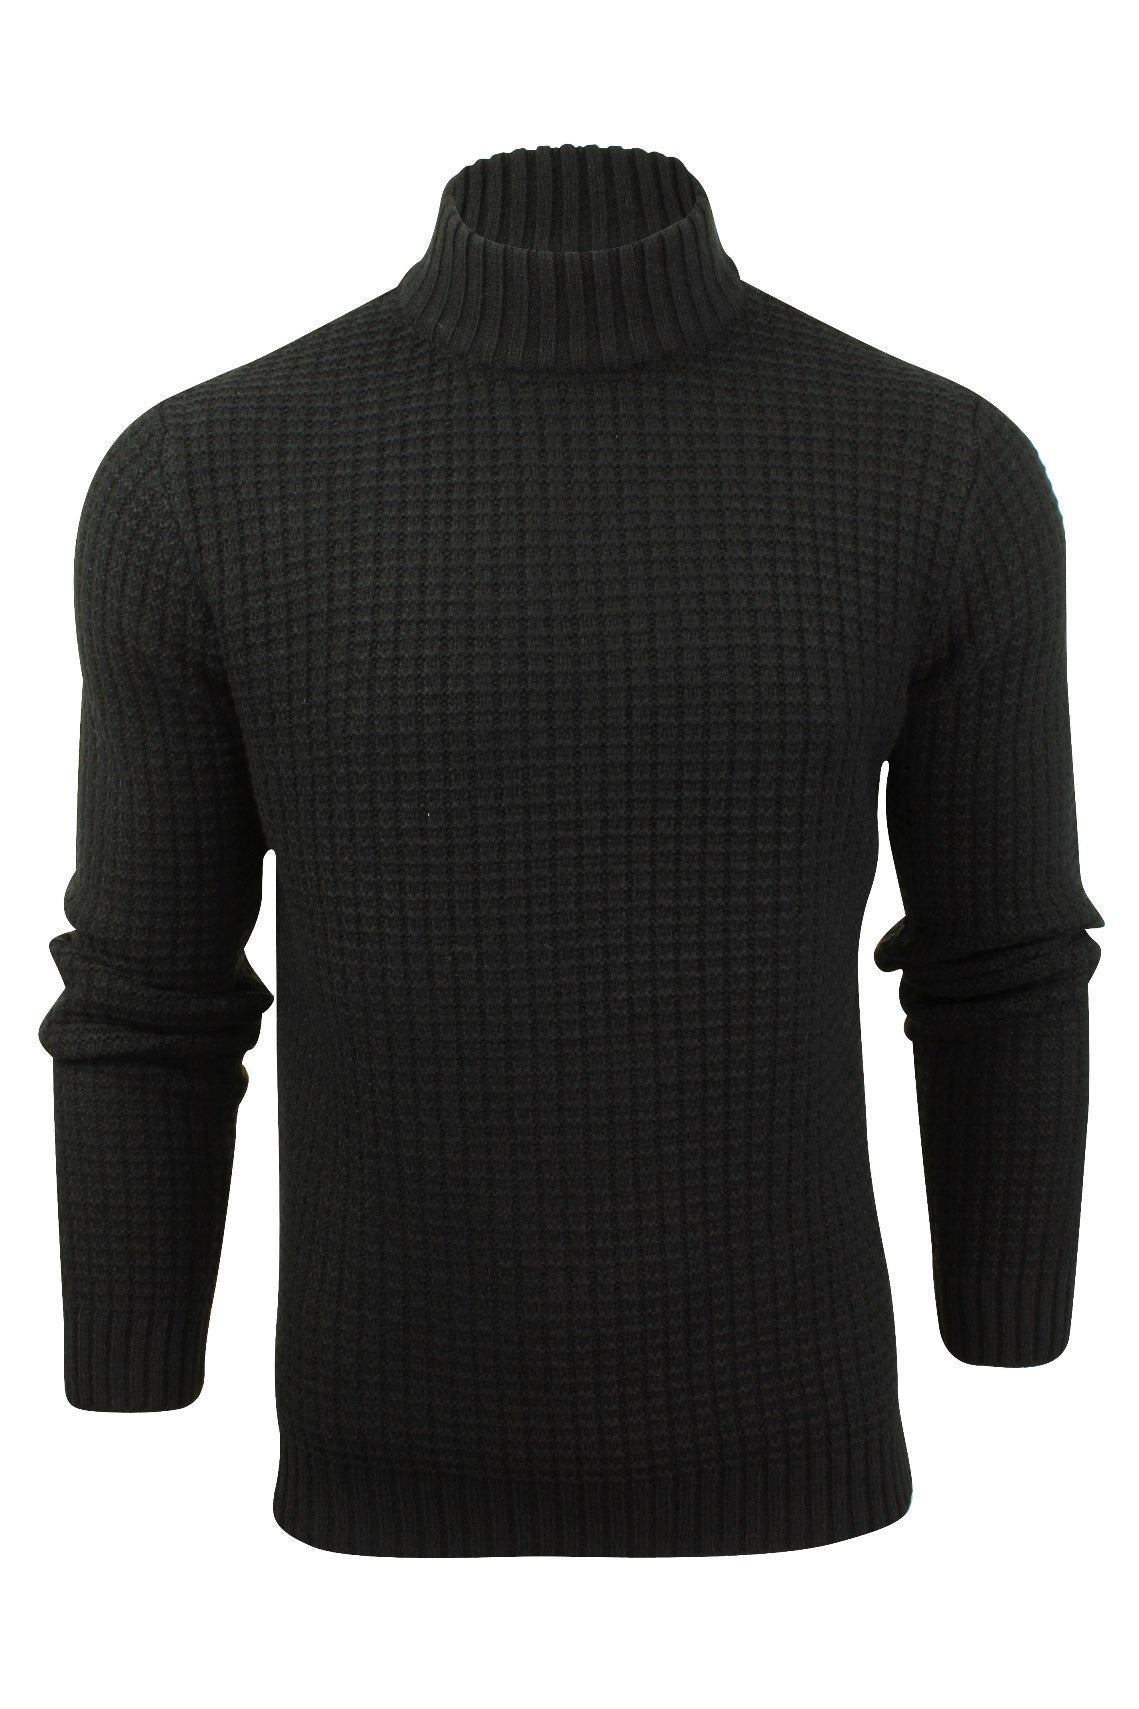 Mens Wool Blend Jumper Turtle Neck  by Xact-Main Image